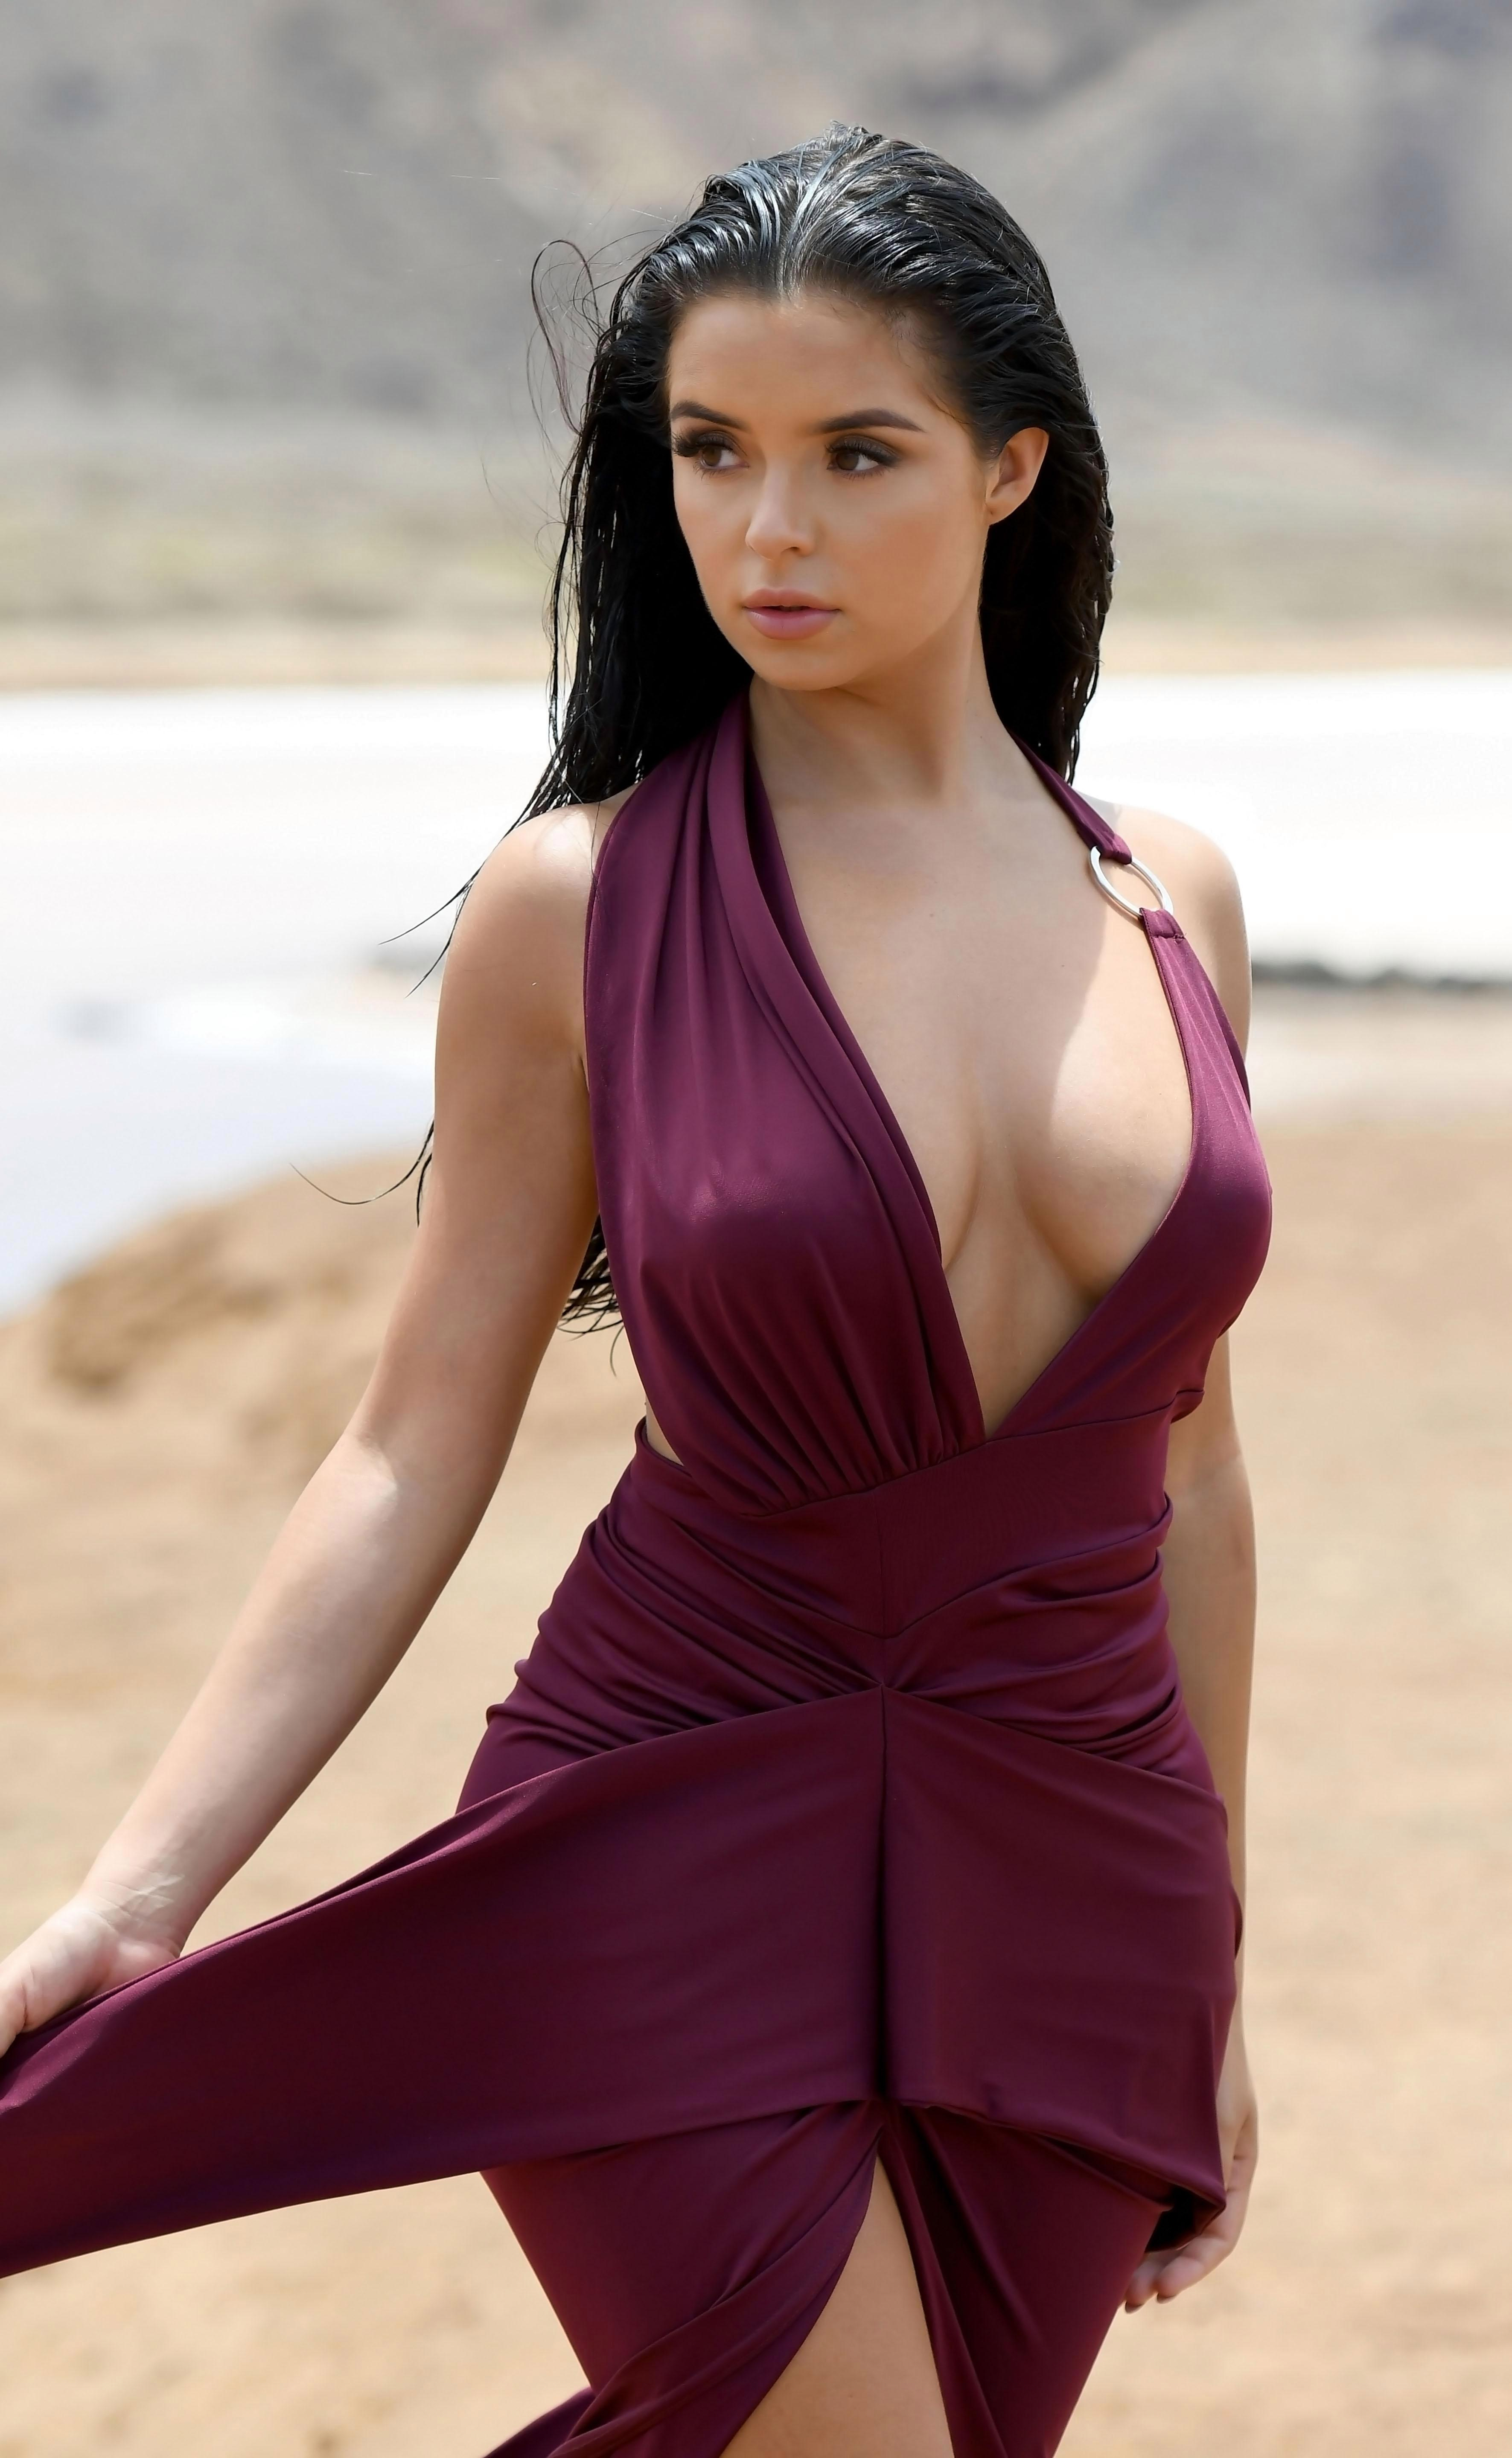 demi rose mawby: overrated? underrated? – #thefappening